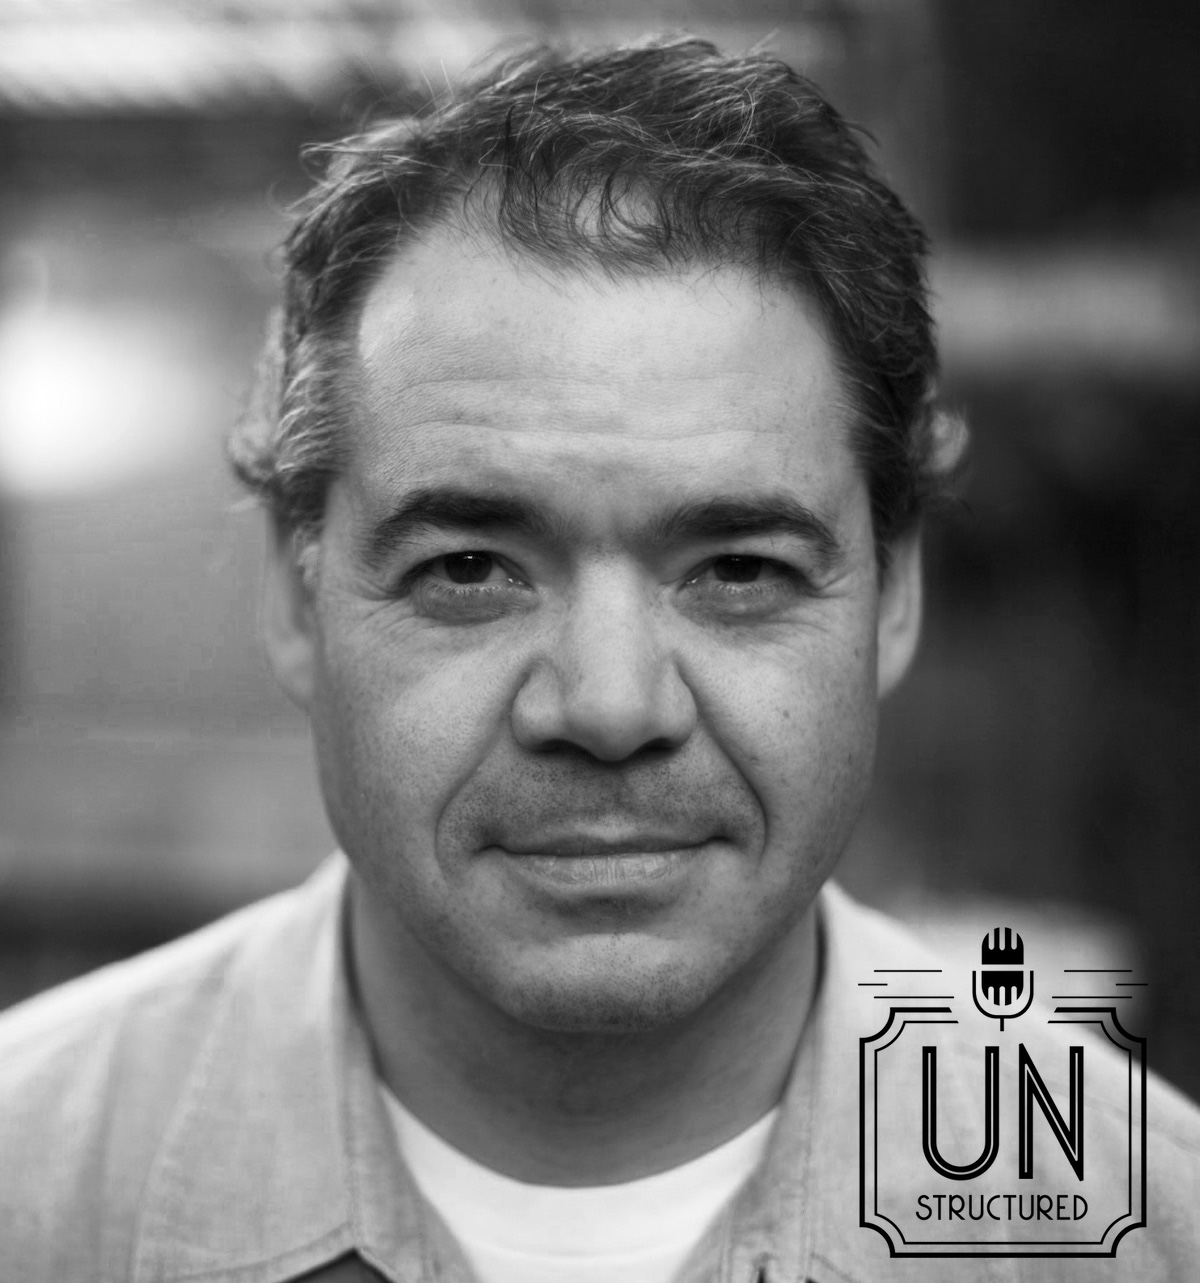 089 - Alex Lindsay - Unique wide-ranging and well-researched unstructured interviews hosted by Eric Hunley UnstructuredPod Dynamic Informal Conversations